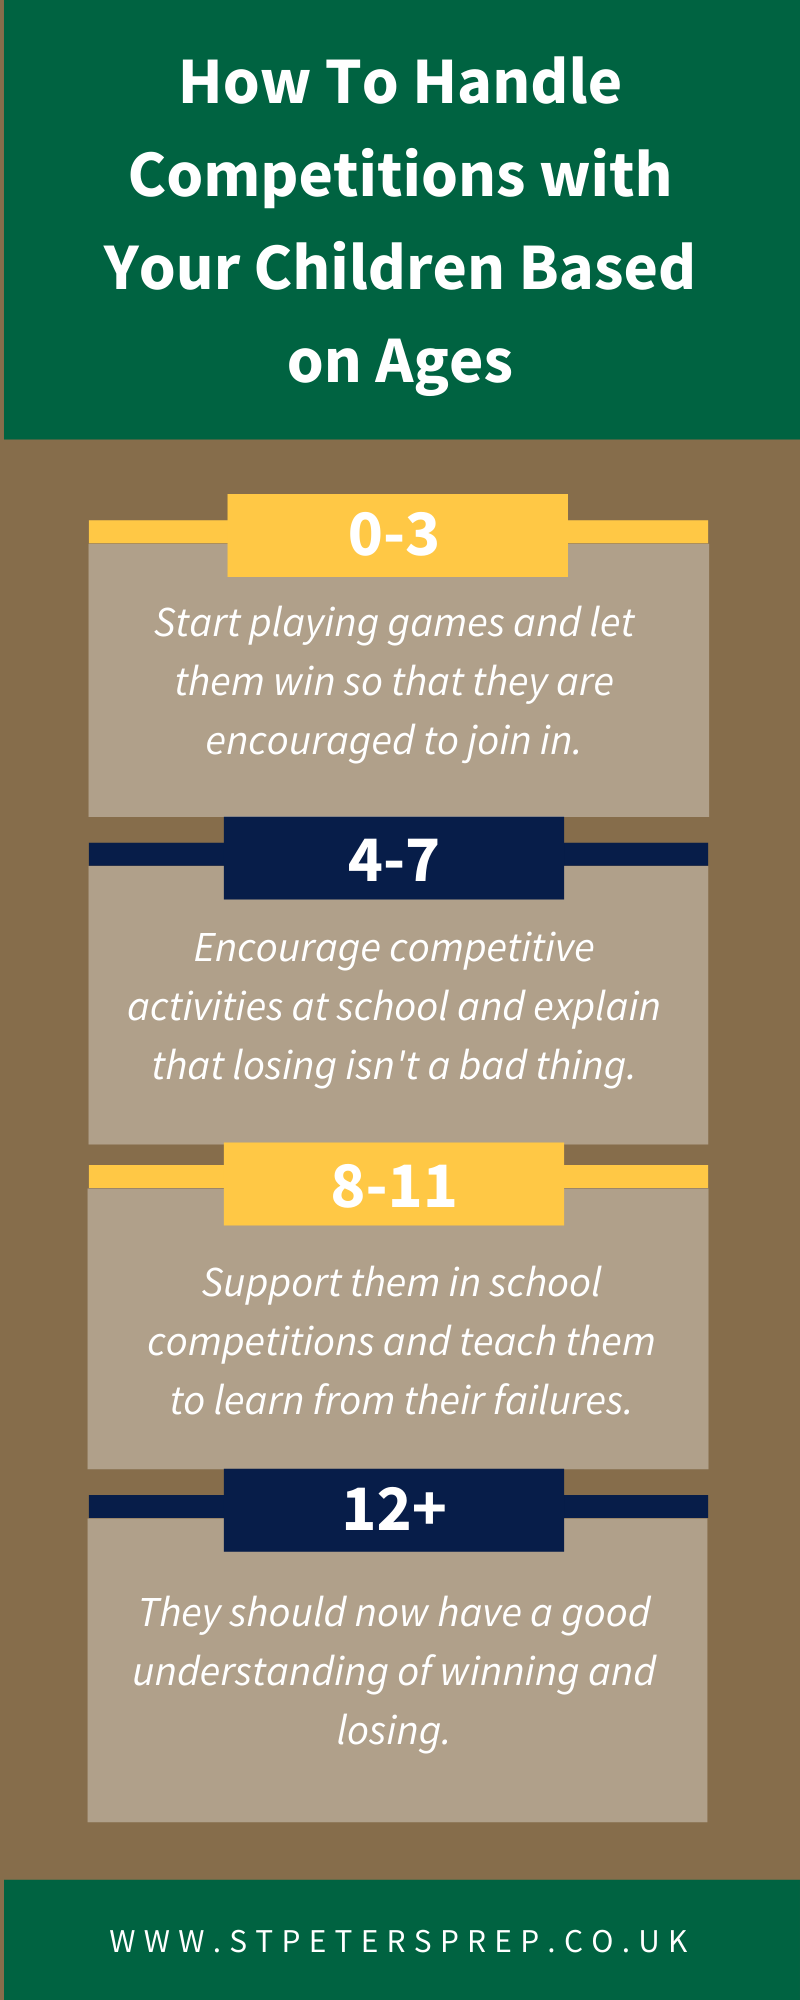 How to handle competitions with your children based on ages infographic